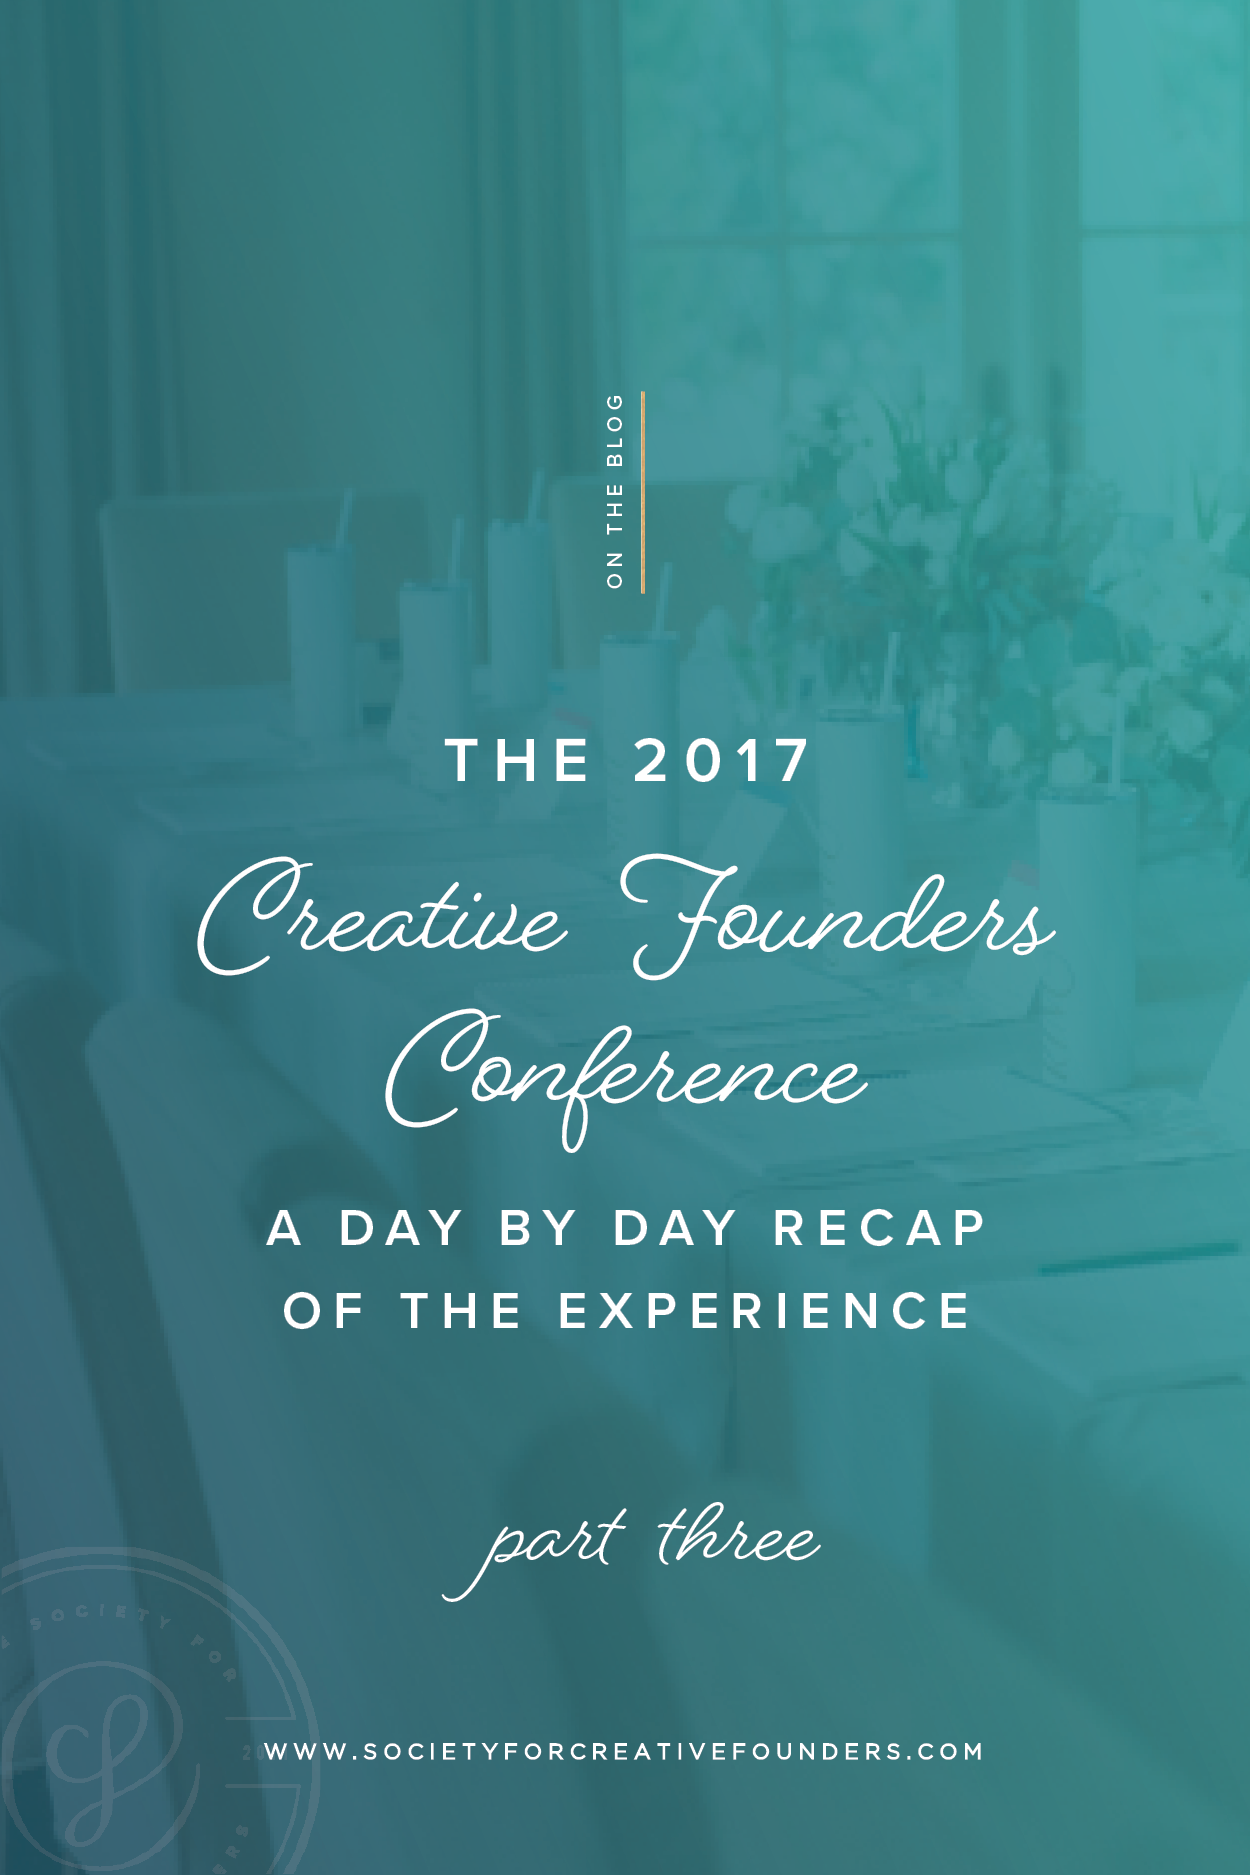 2017 Creative Founders Conference Recap - Day 3 - Society for Creative Founders